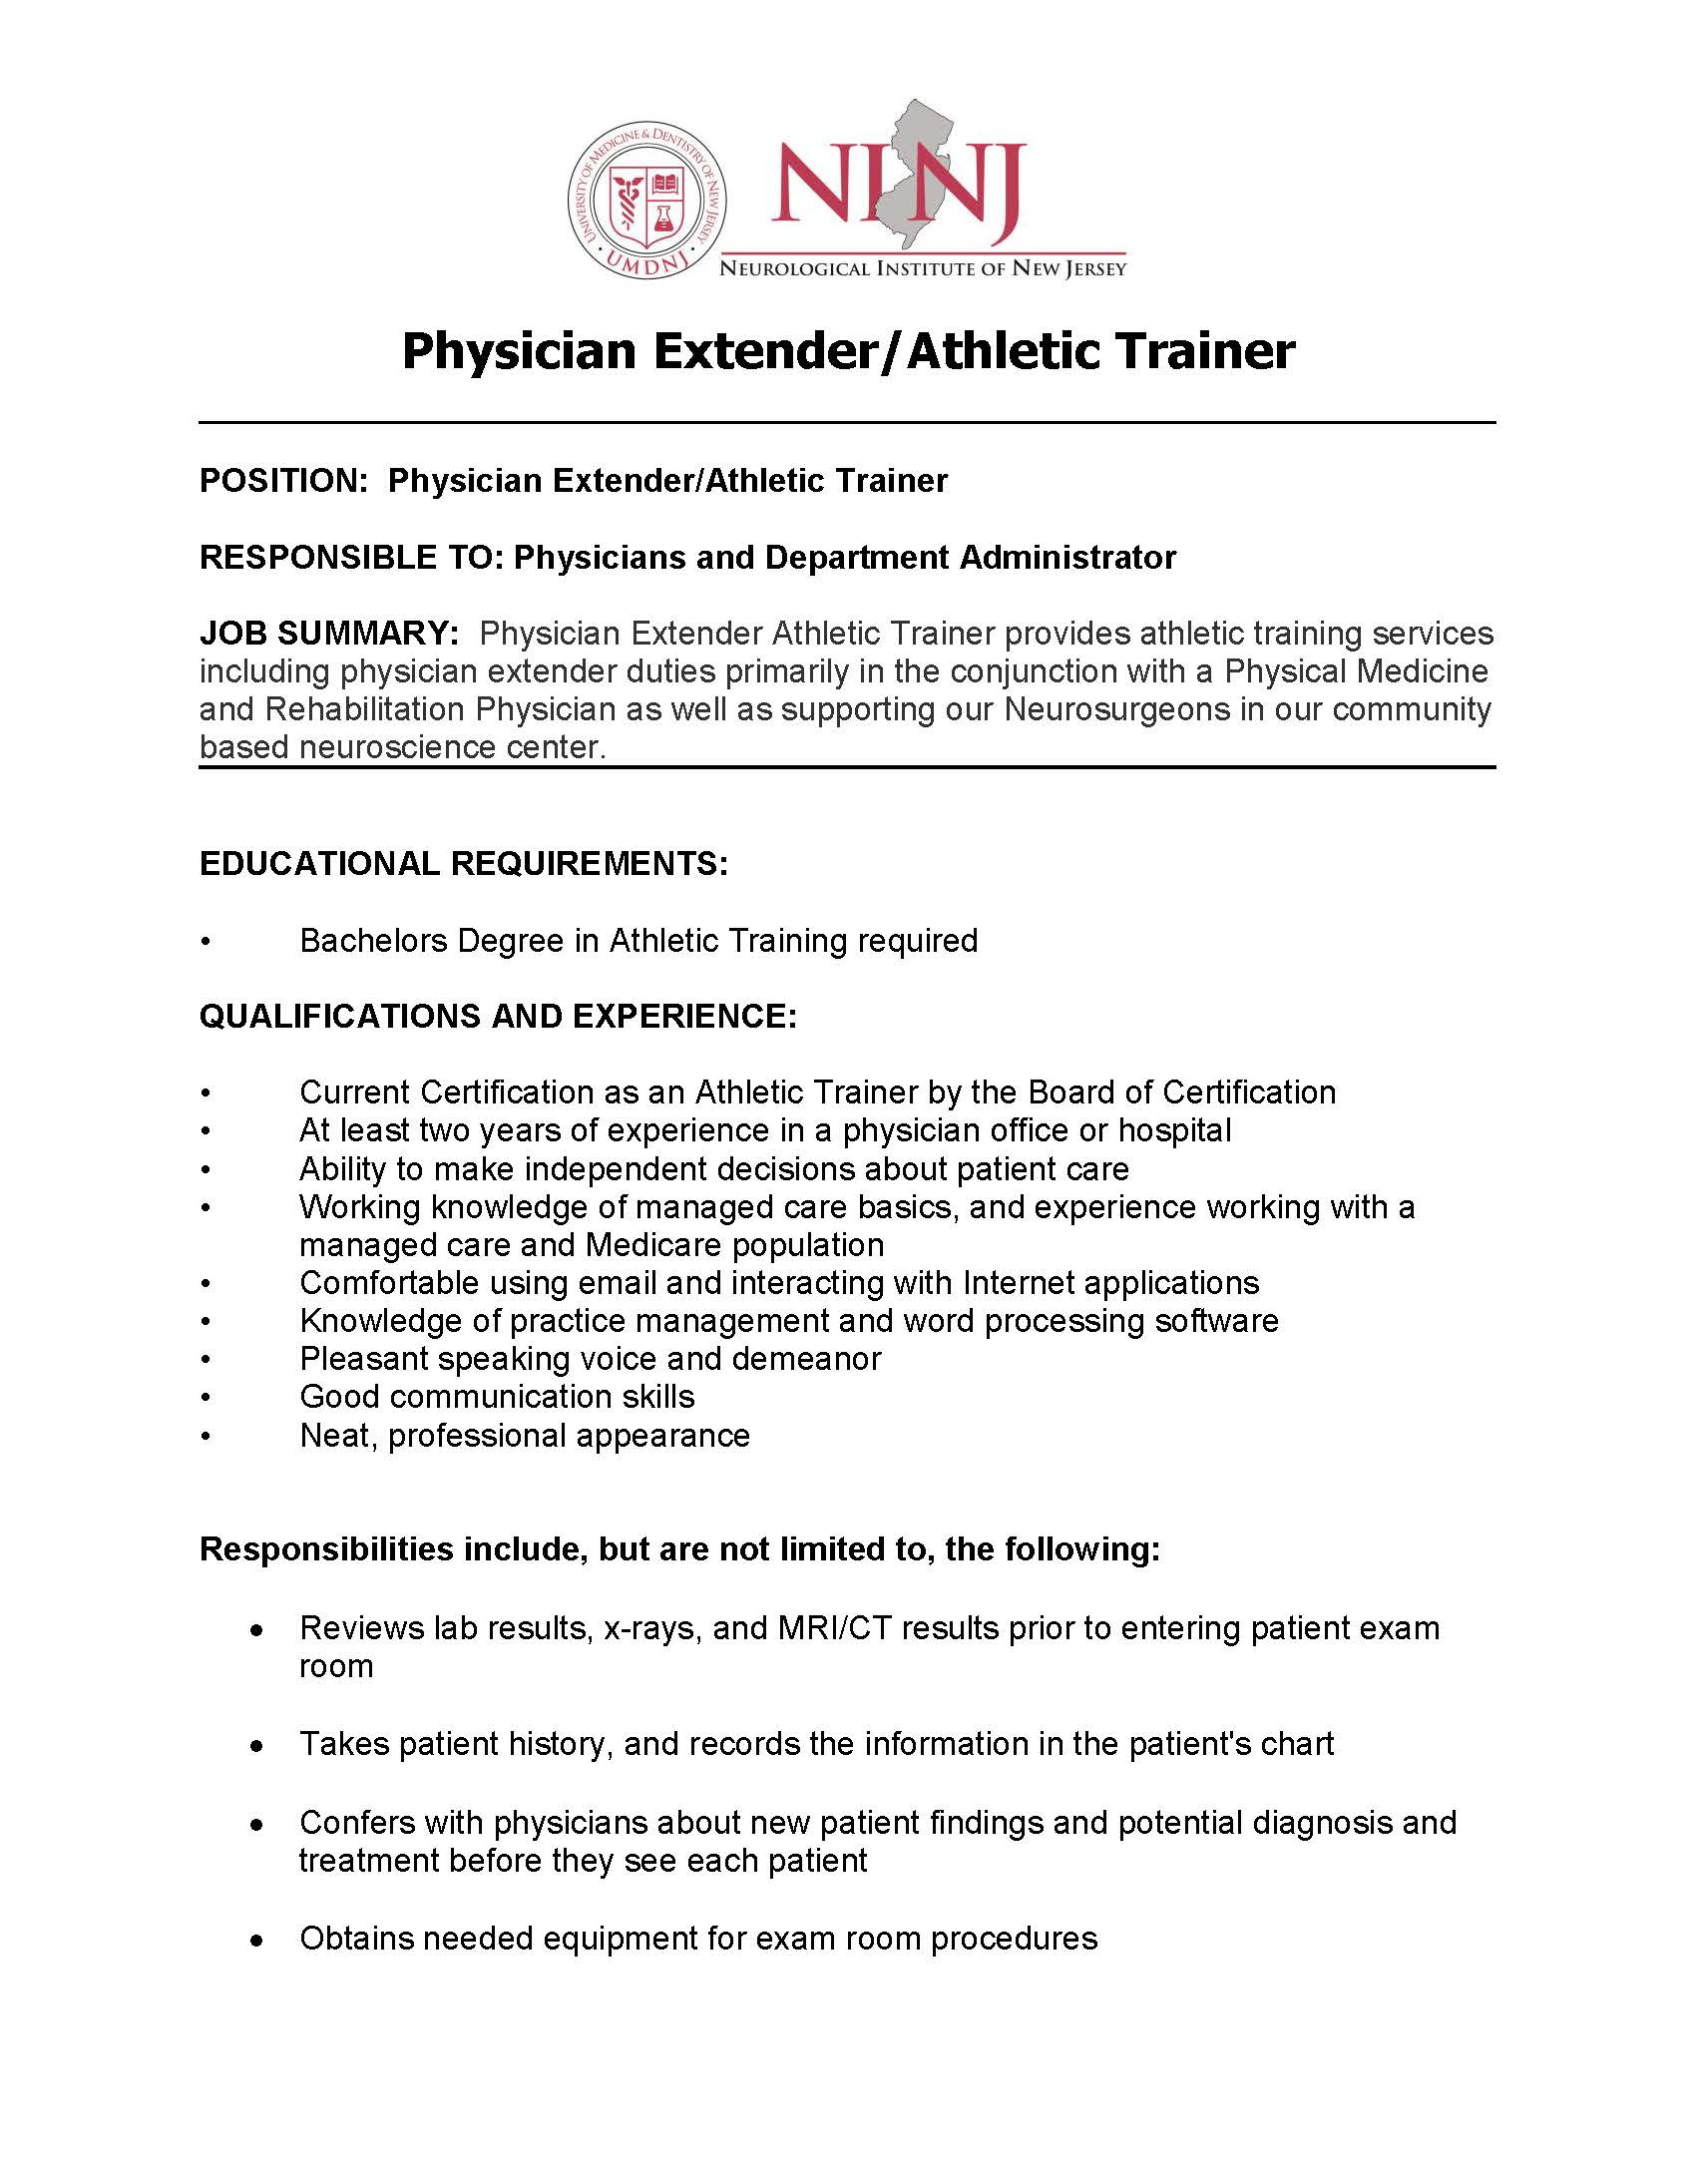 Athletic training today jobs athletic trainer in a physician practice new jersey 1betcityfo Choice Image